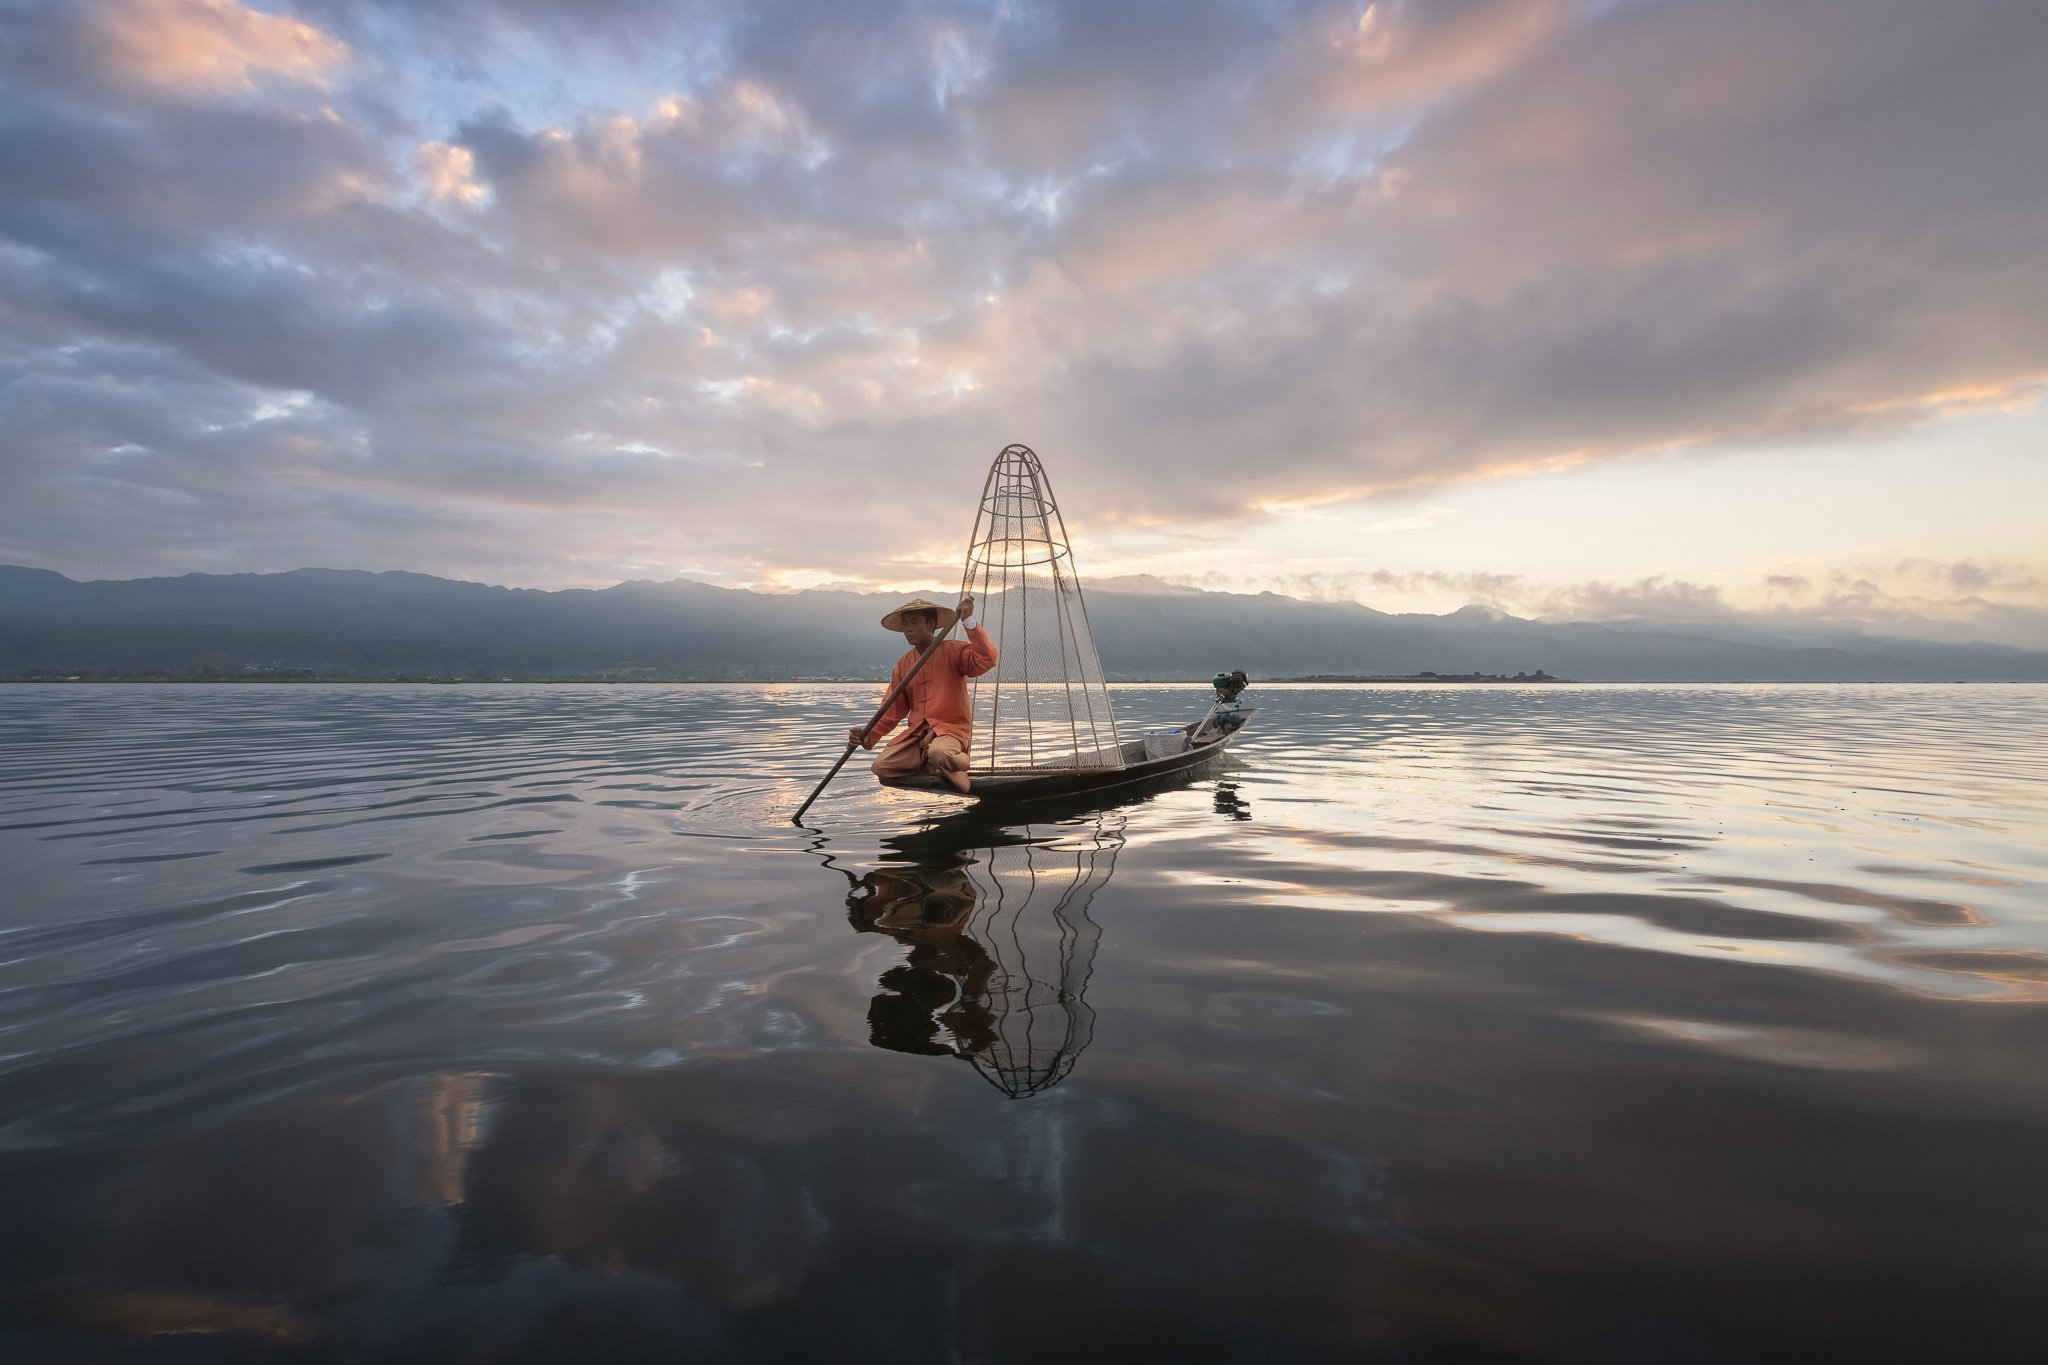 asia, asian, attraction, balance, balancing, bamboo, boat, burma, burmese, canoe, catching, clouds, countryside, culture, dawn, famous, fish, fisherman, fishing, inlay, inle, kayak, lake, landscape, lifestyle, local, man, morning, myanmar, nature, net, oa, Omelyanchuk Andrey